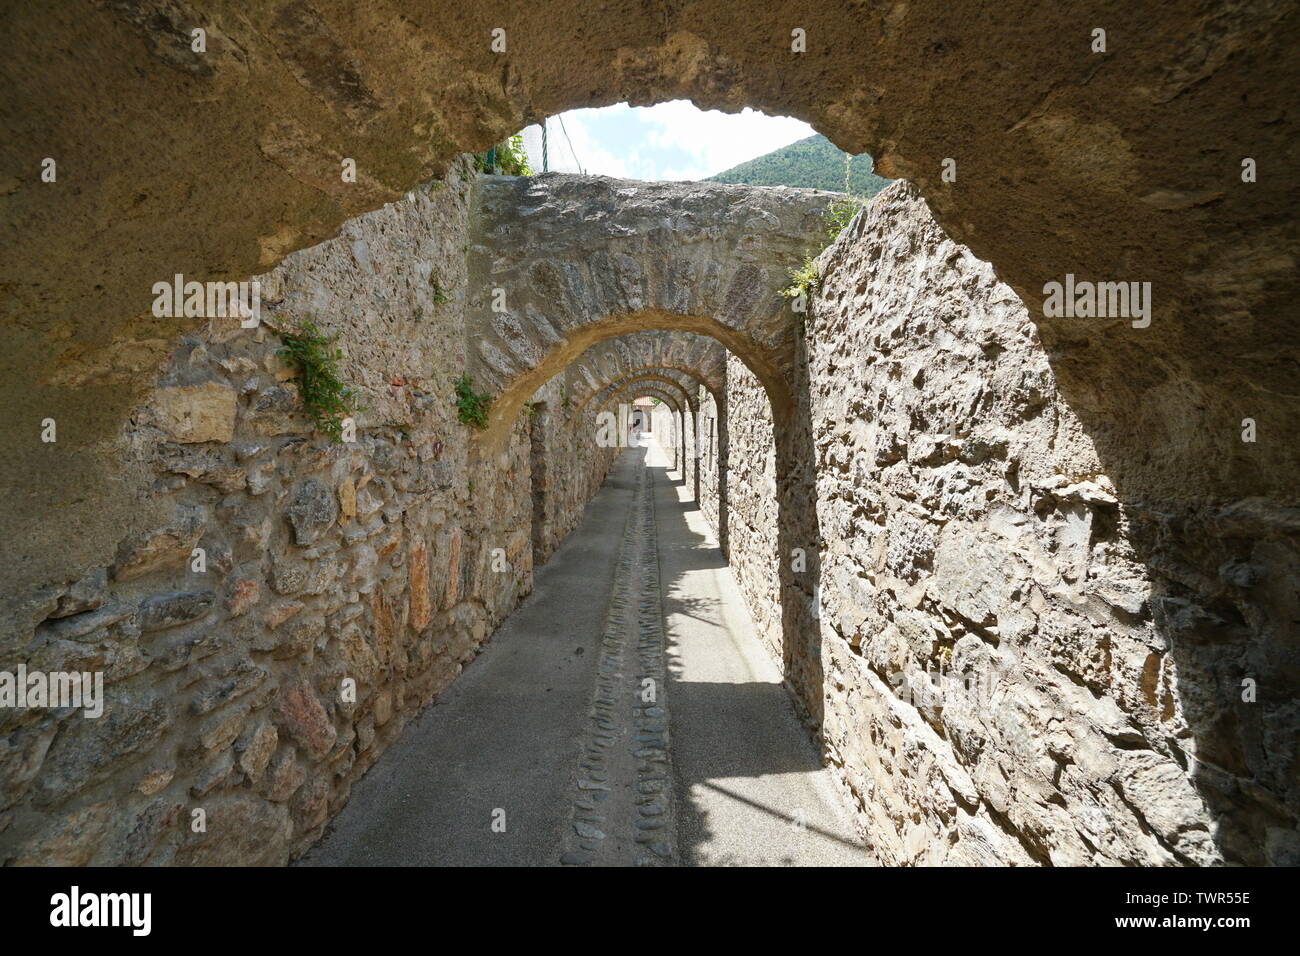 Passage under stone arches inside the fortified village of Villefranche de Conflent, Pyrenees Orientales, Occitanie, France Stock Photo